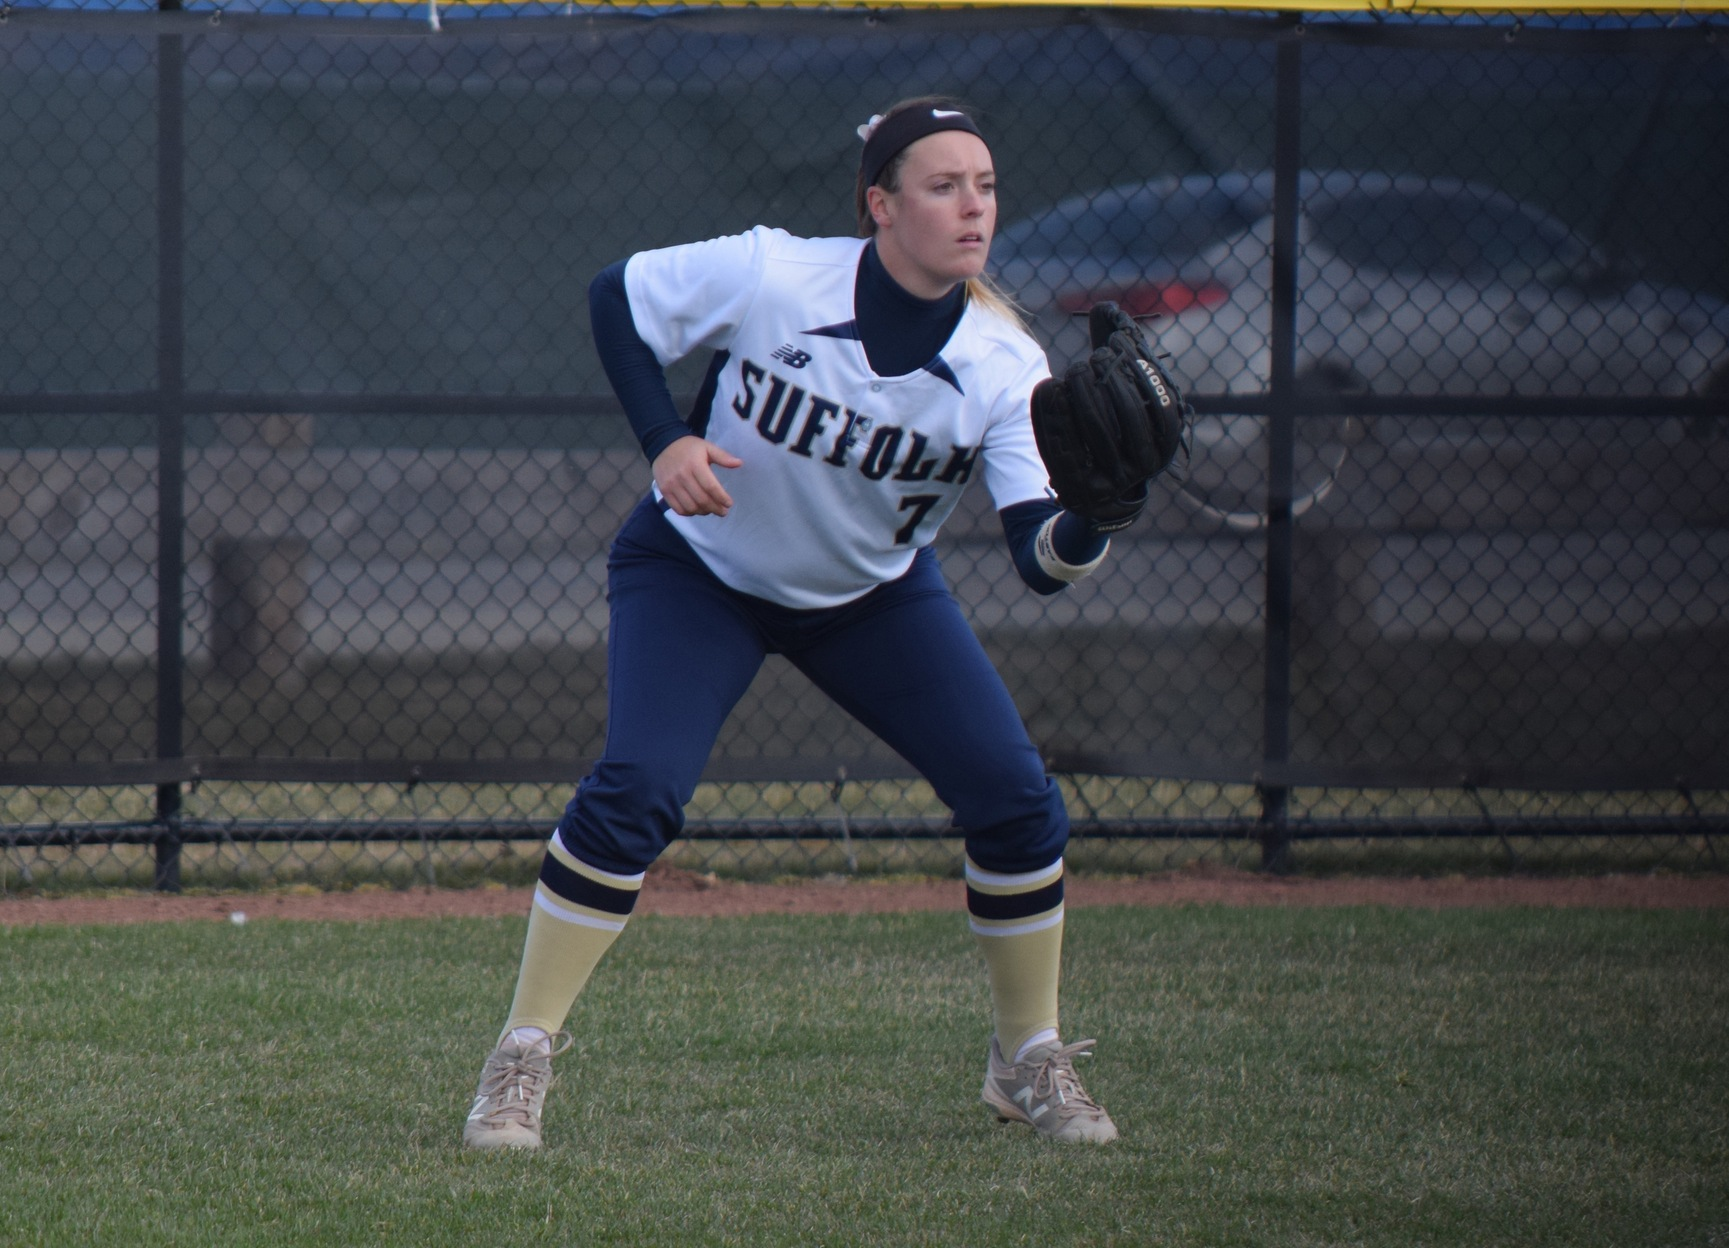 Softball Welcomes Mt. Ida, Lasell this Weekend